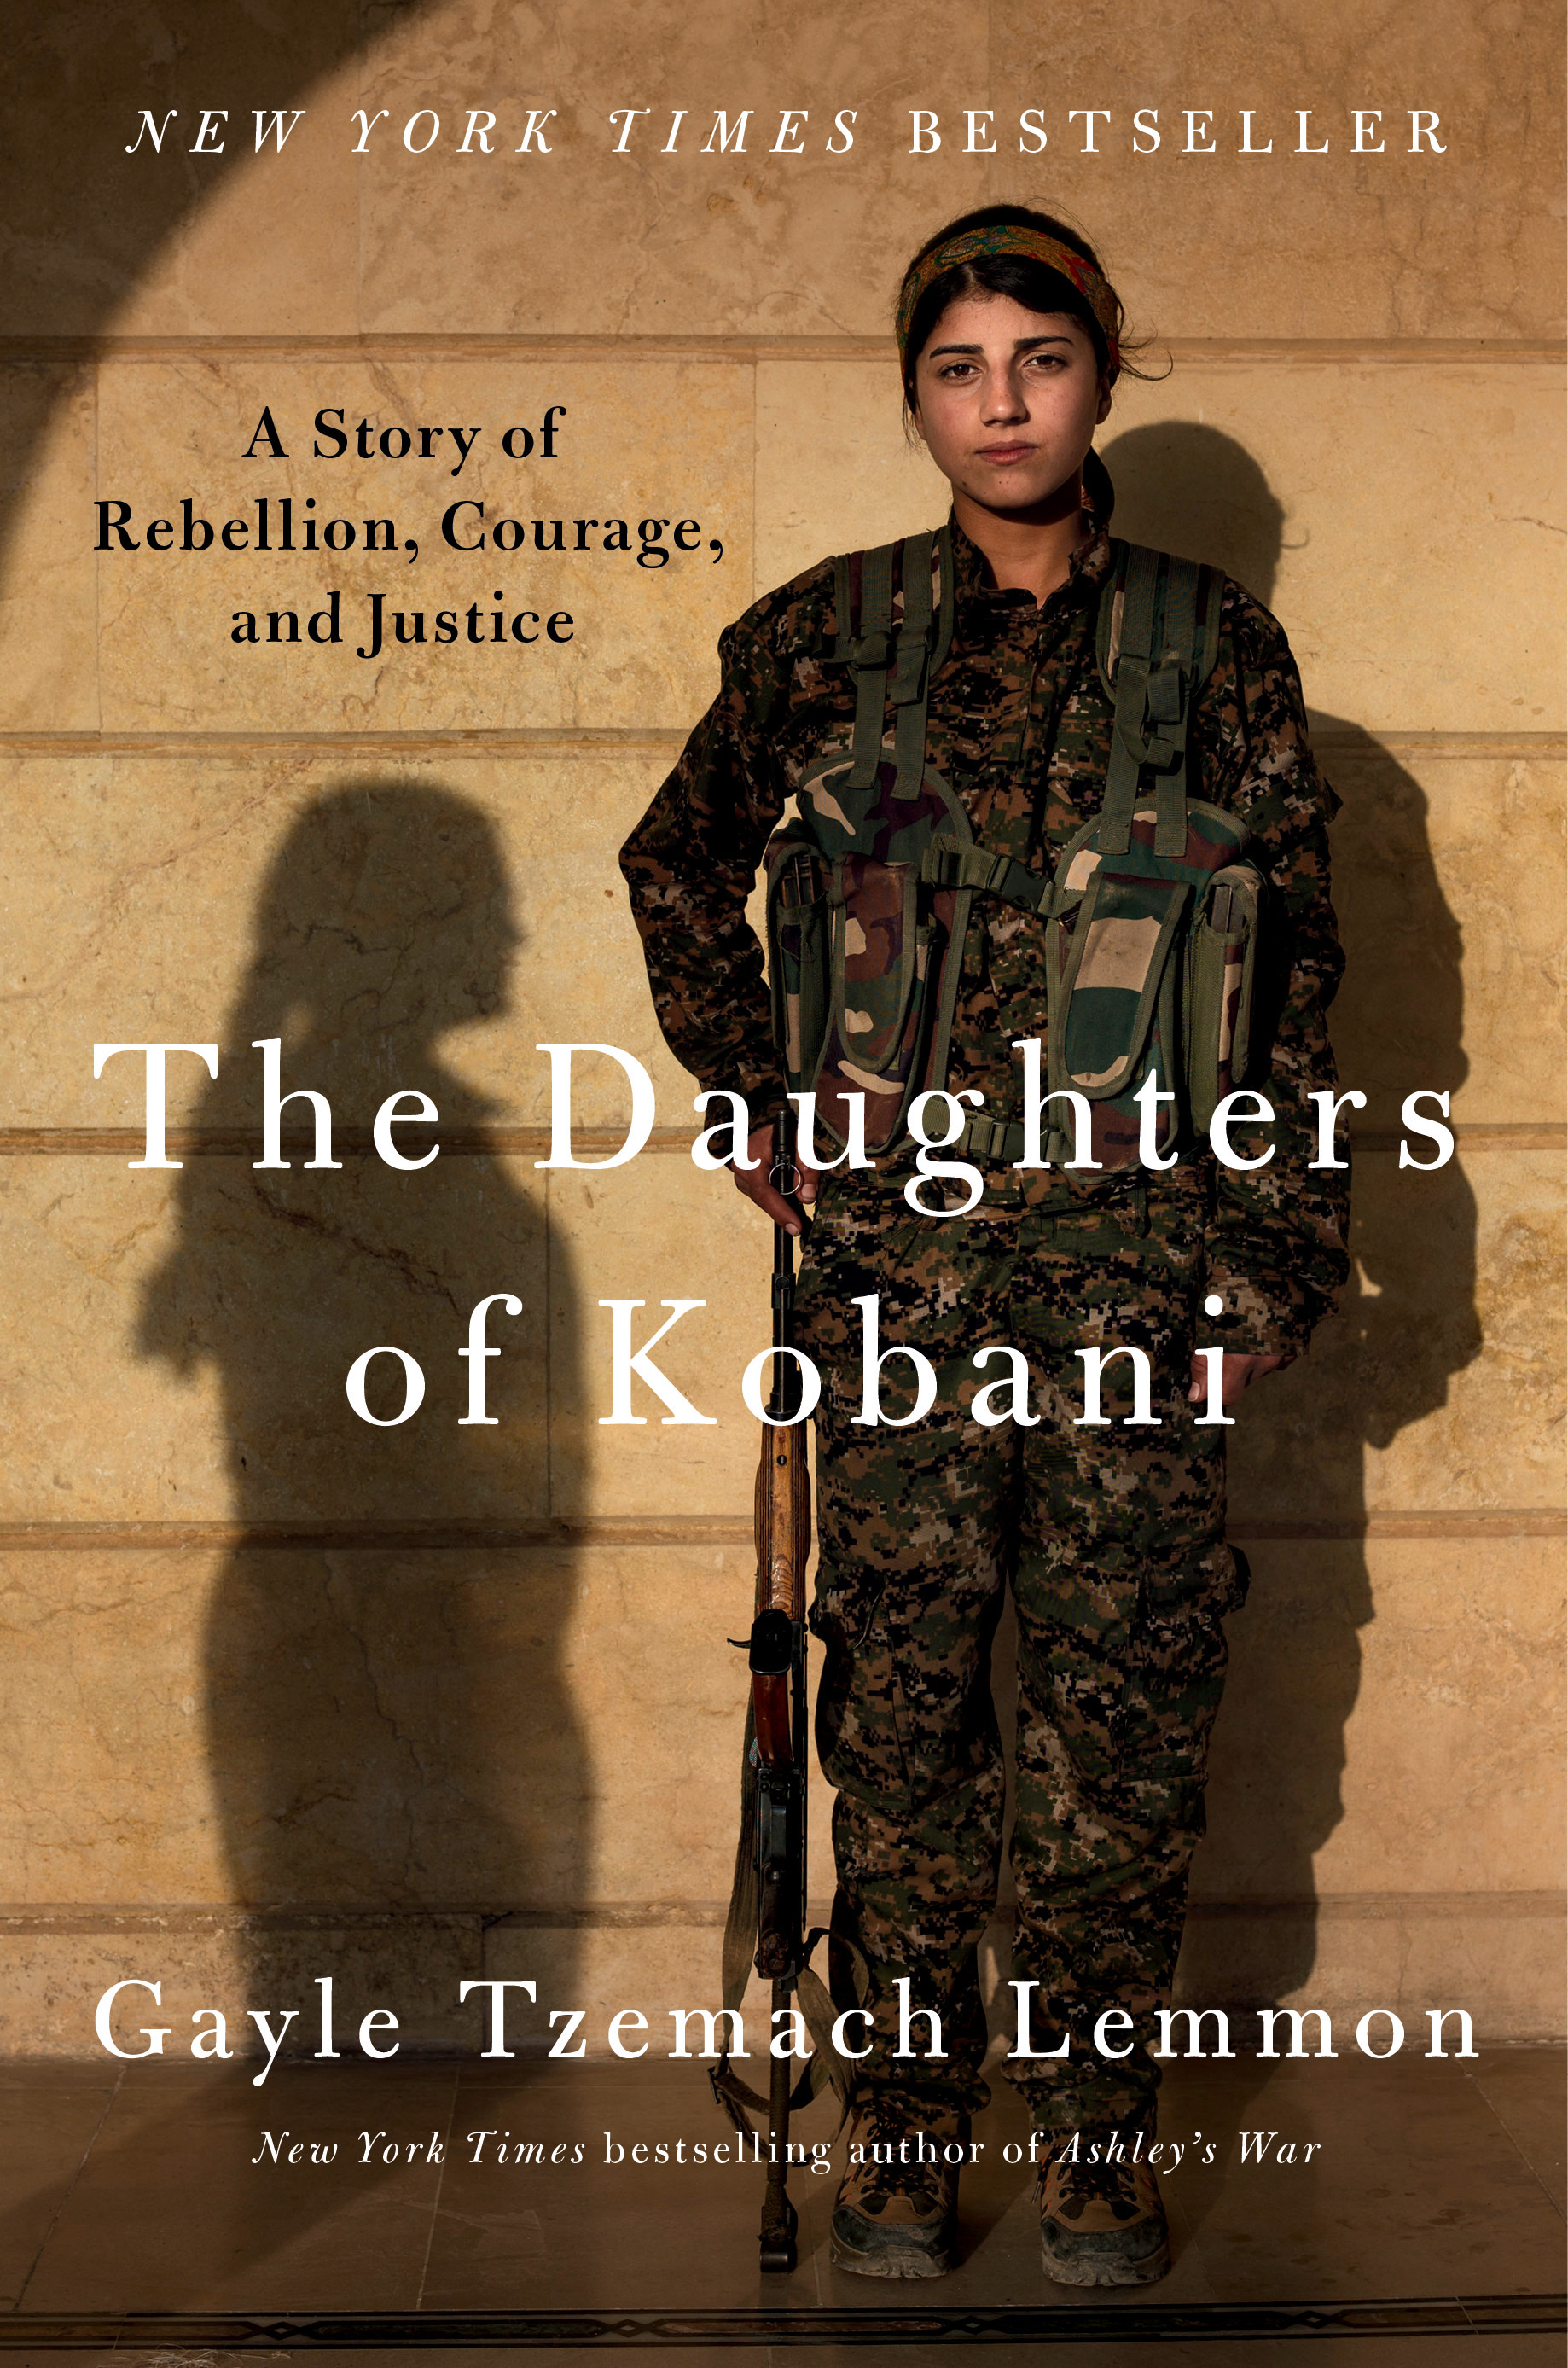 The Daughters of Kobani by Gayle Tzemach Lemmon